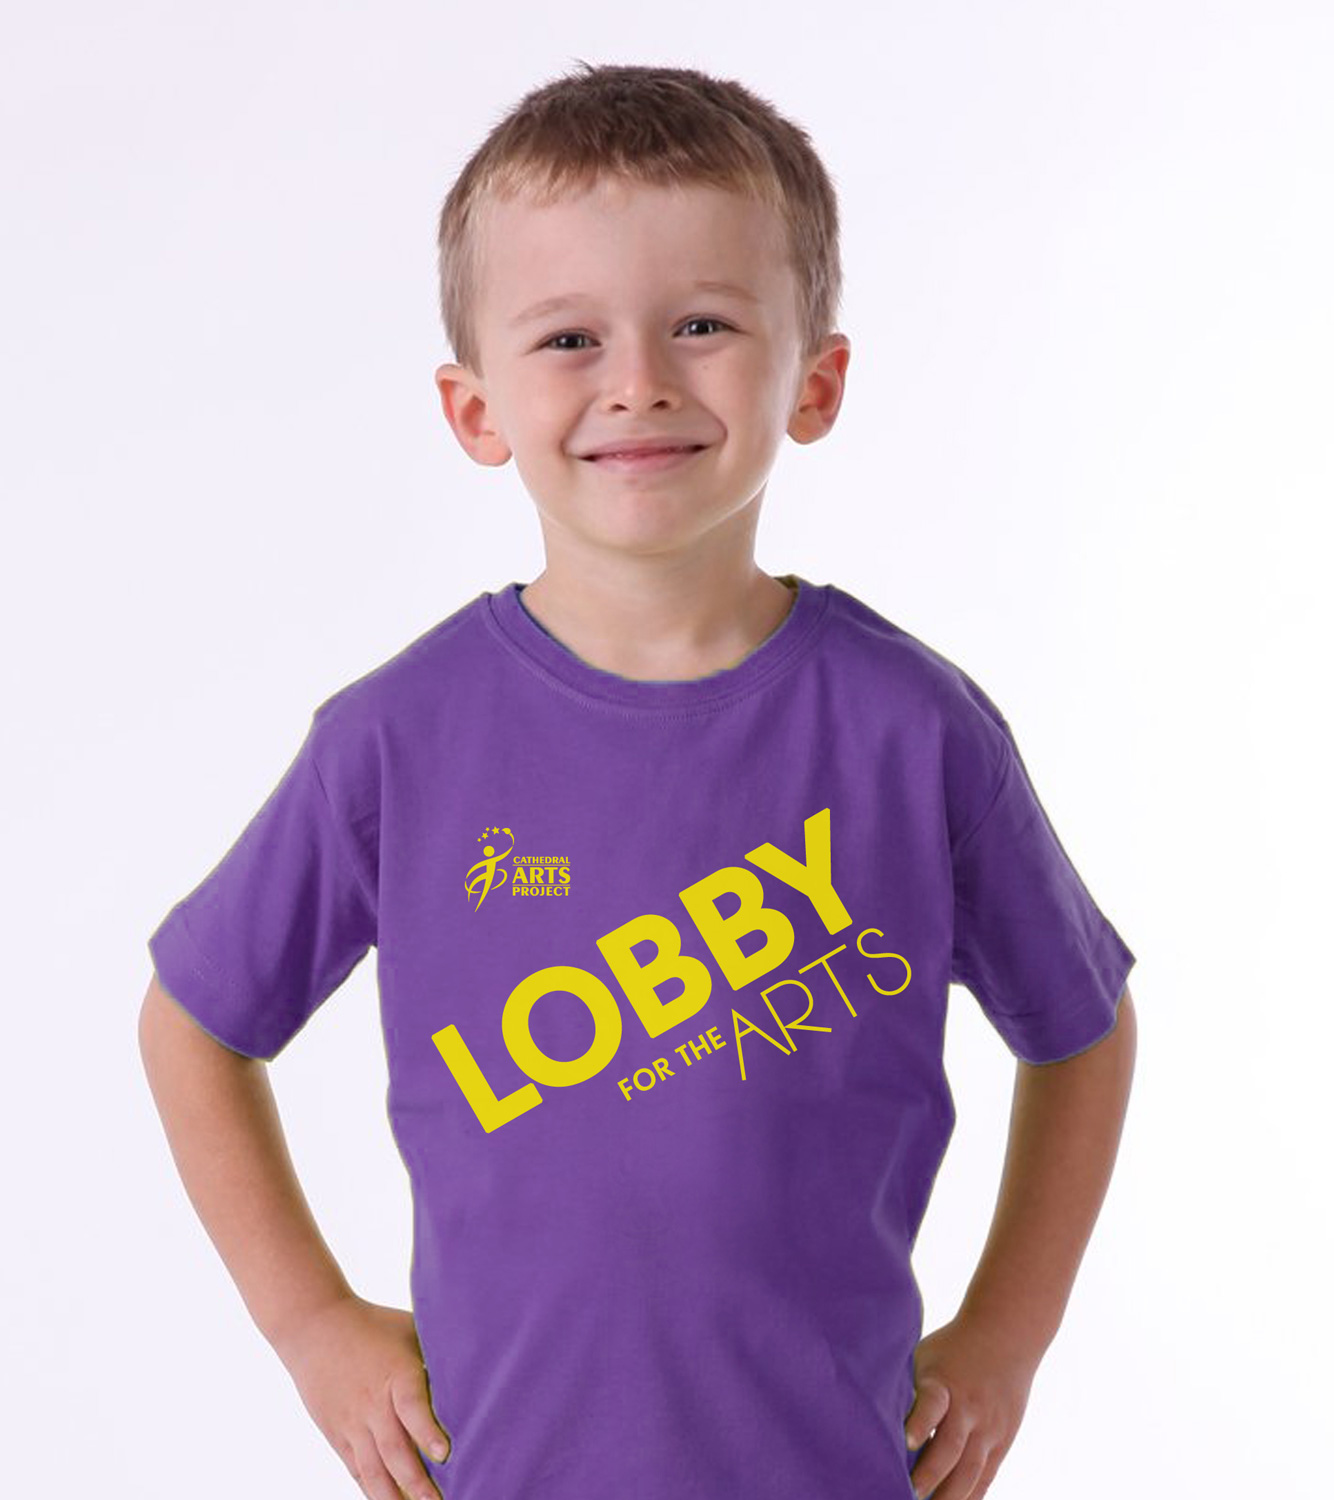 A child wears the Lobby For The Arts t-shirt